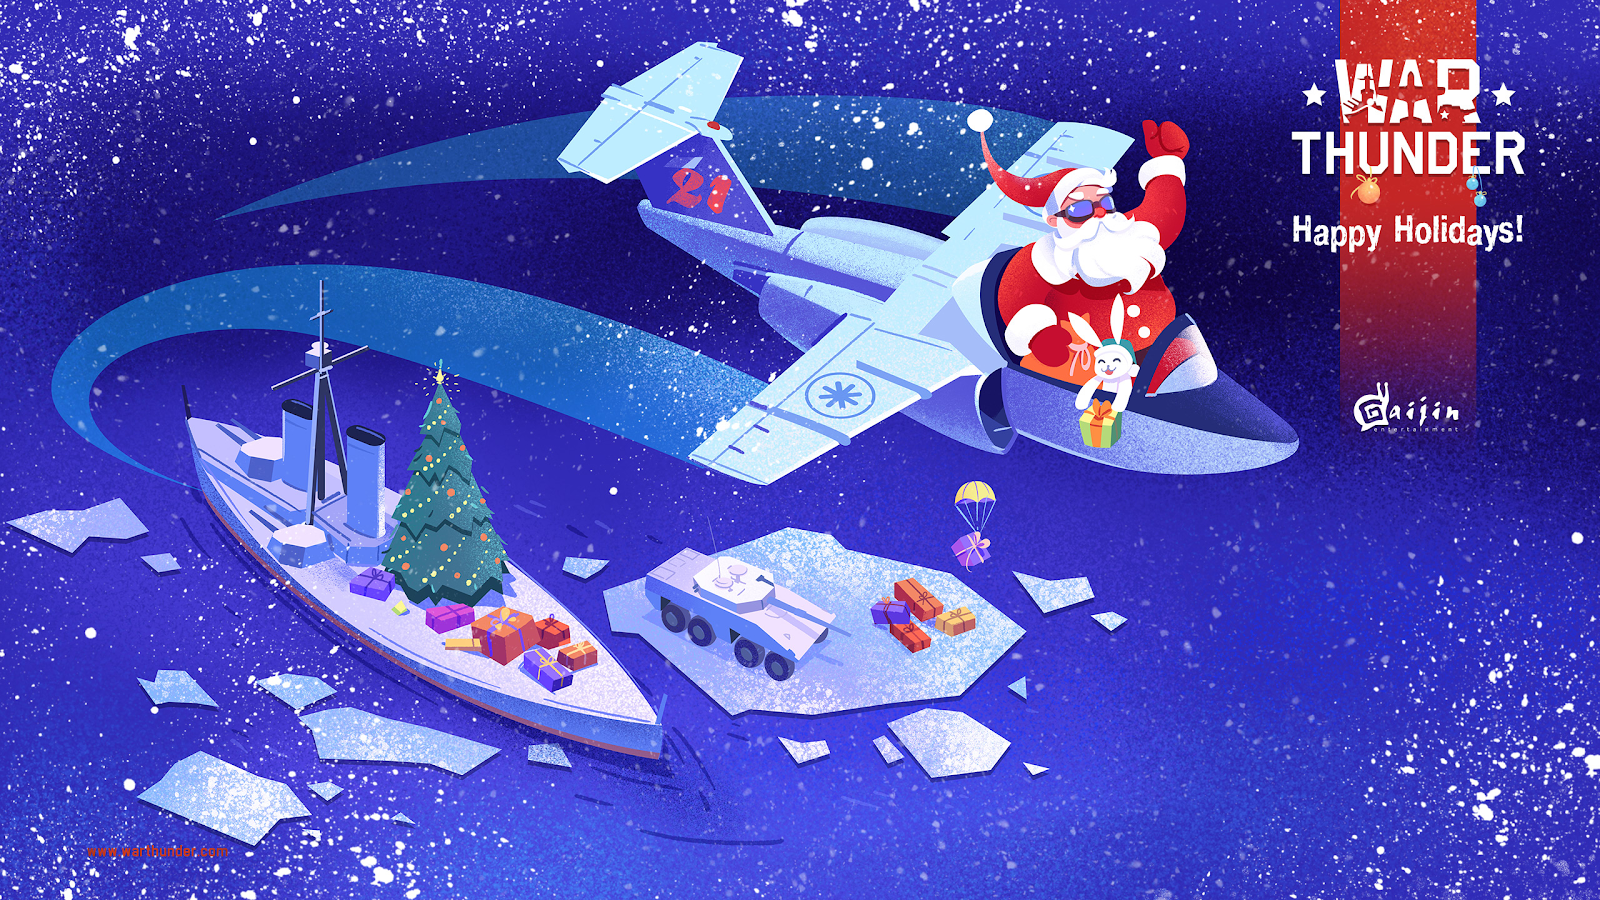 war thunder christmas sale 2021 is now available